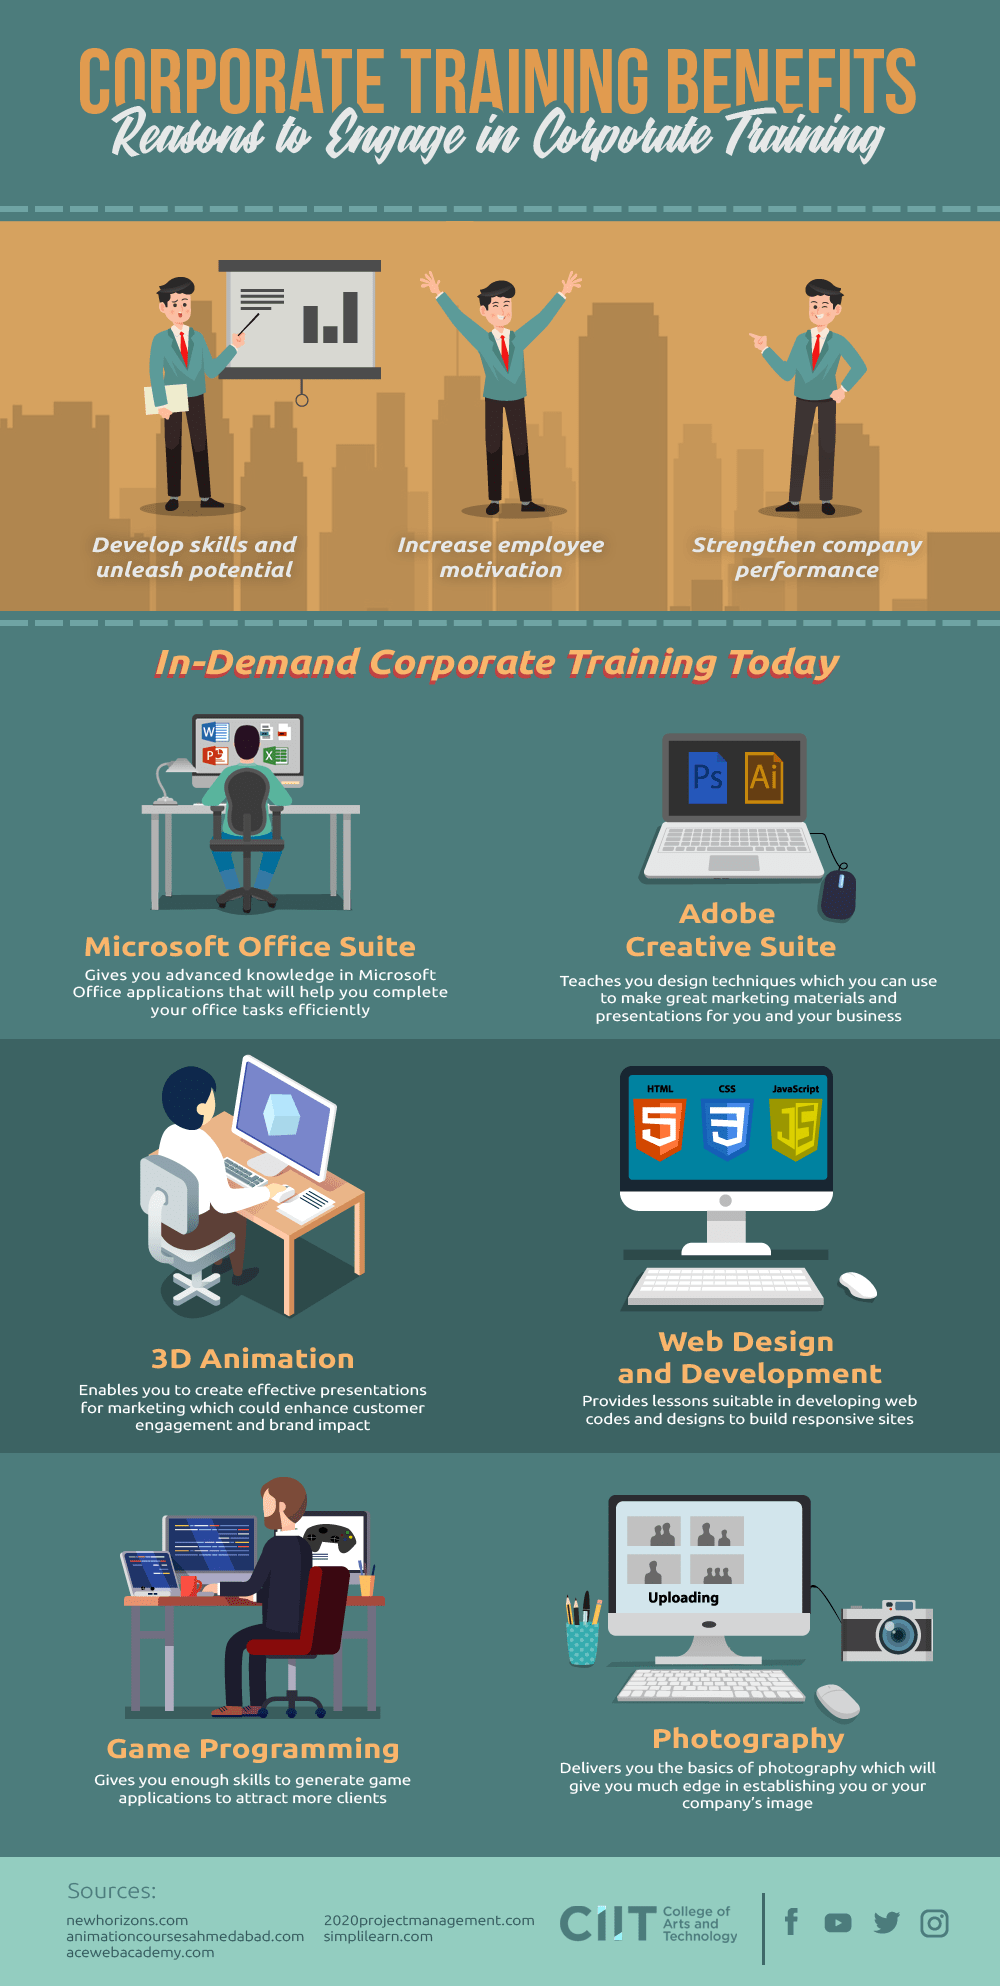 Corporate Training Benefits Importance of Training and